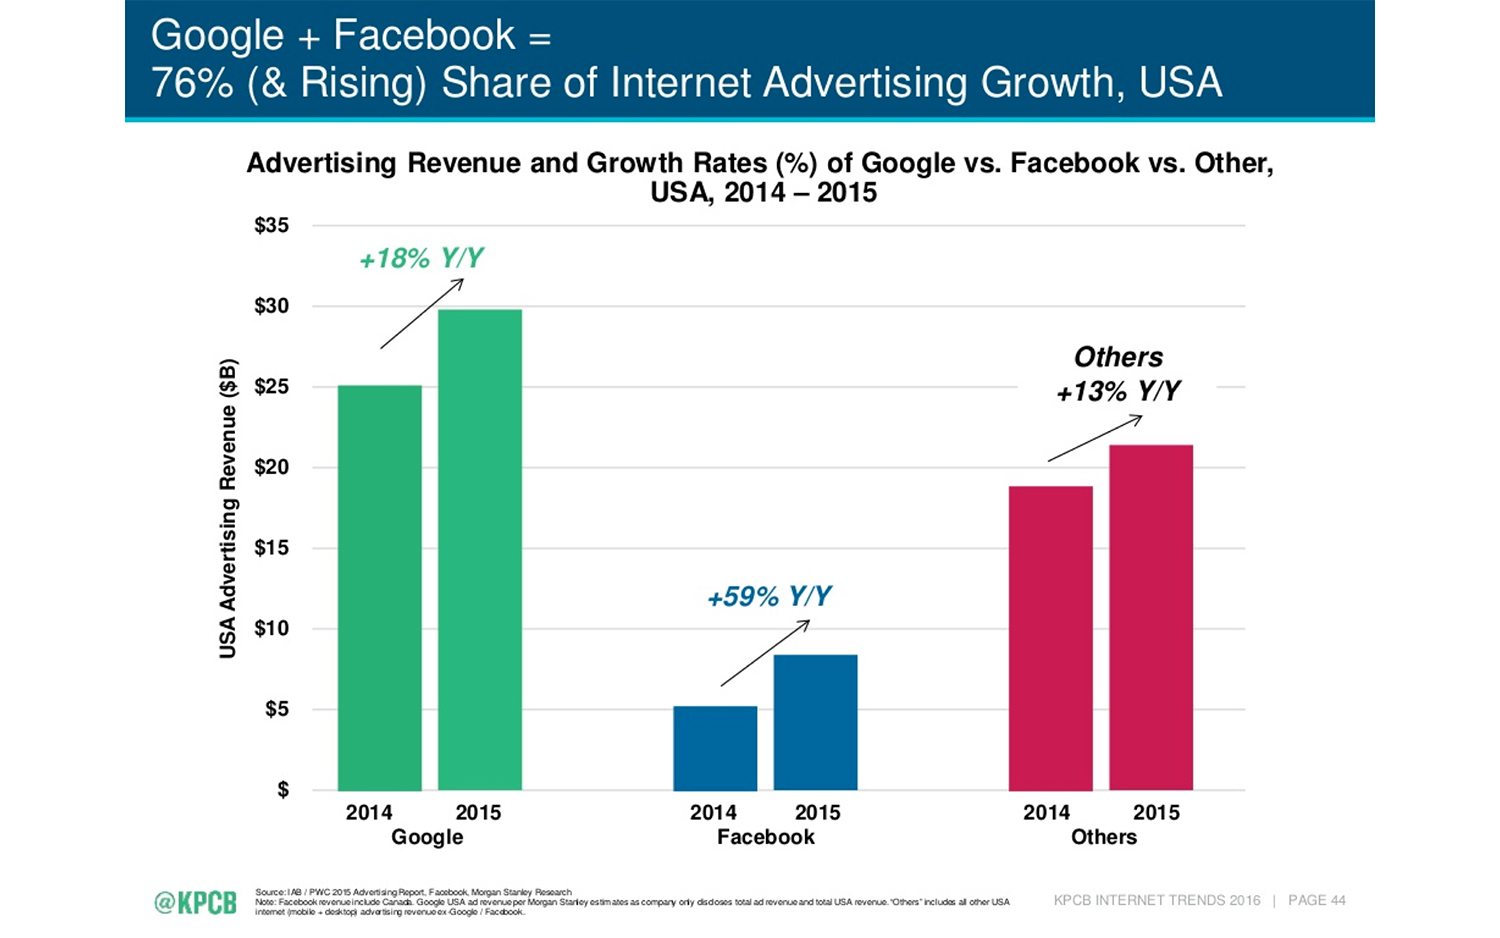 Internet advertising is working and Facebook is now a major player